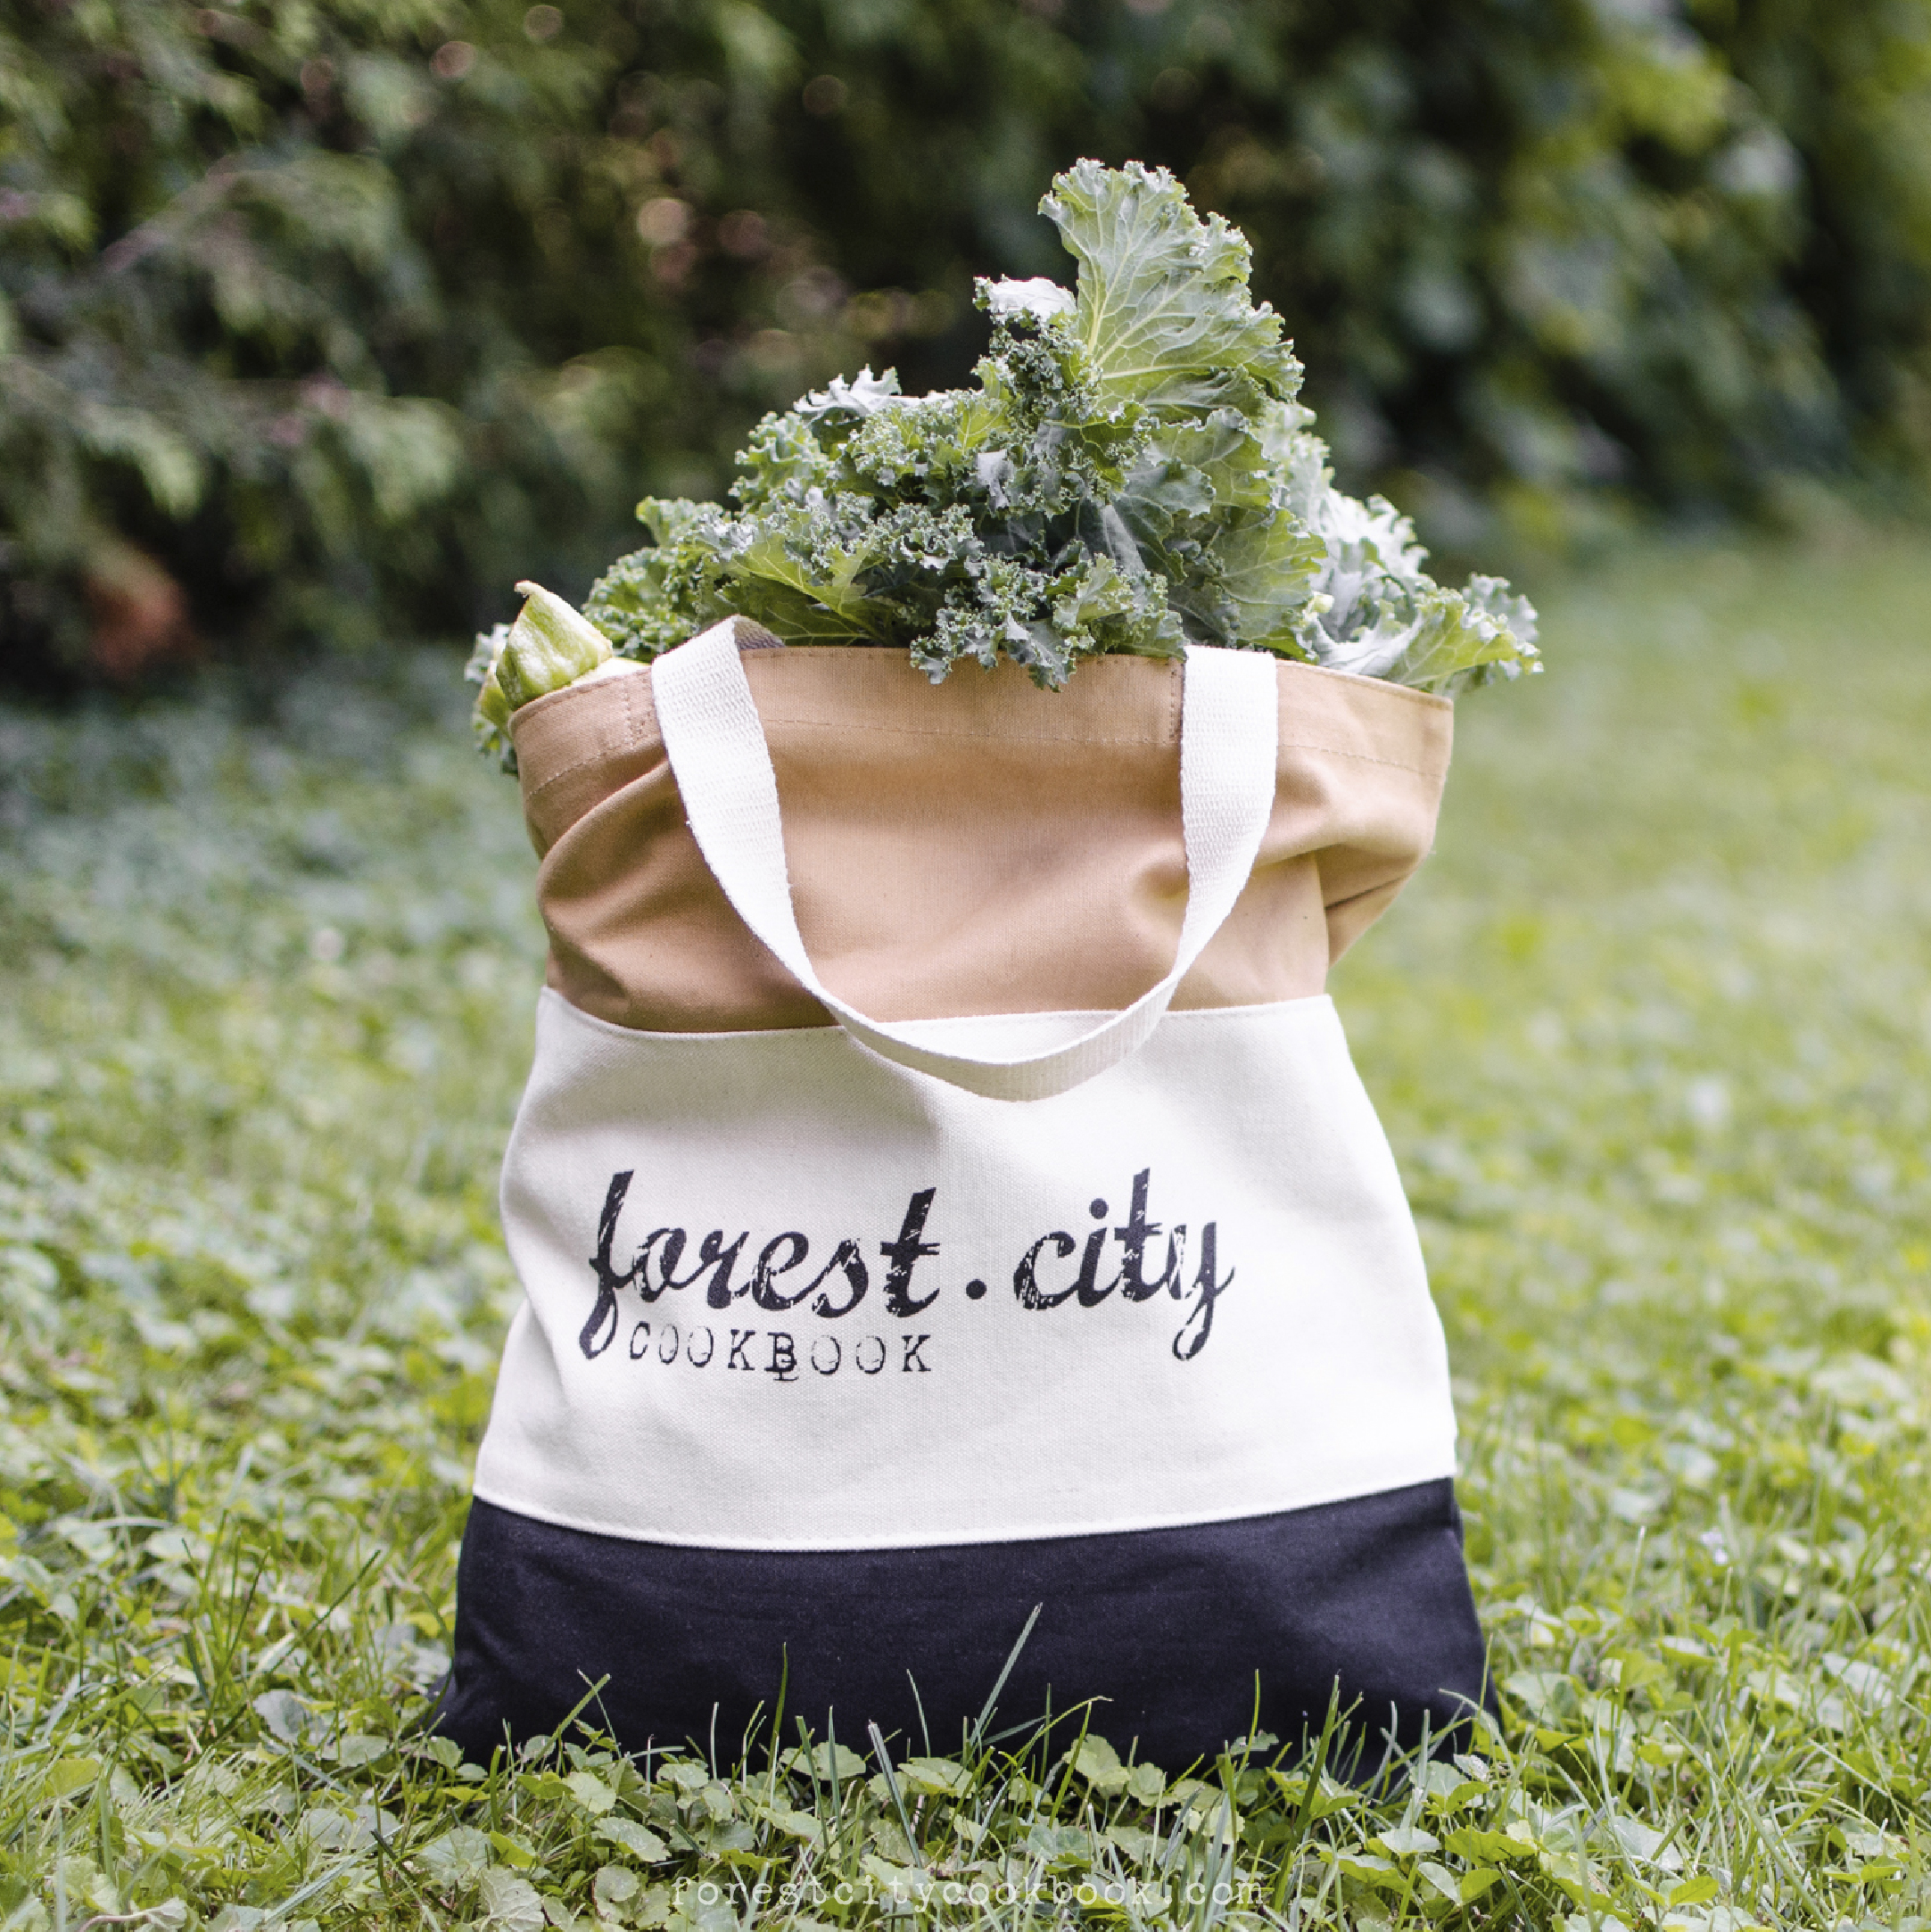 Forest City Cookbook - London Ontario Chefs, Farms & Beer - Part 3-51.jpg